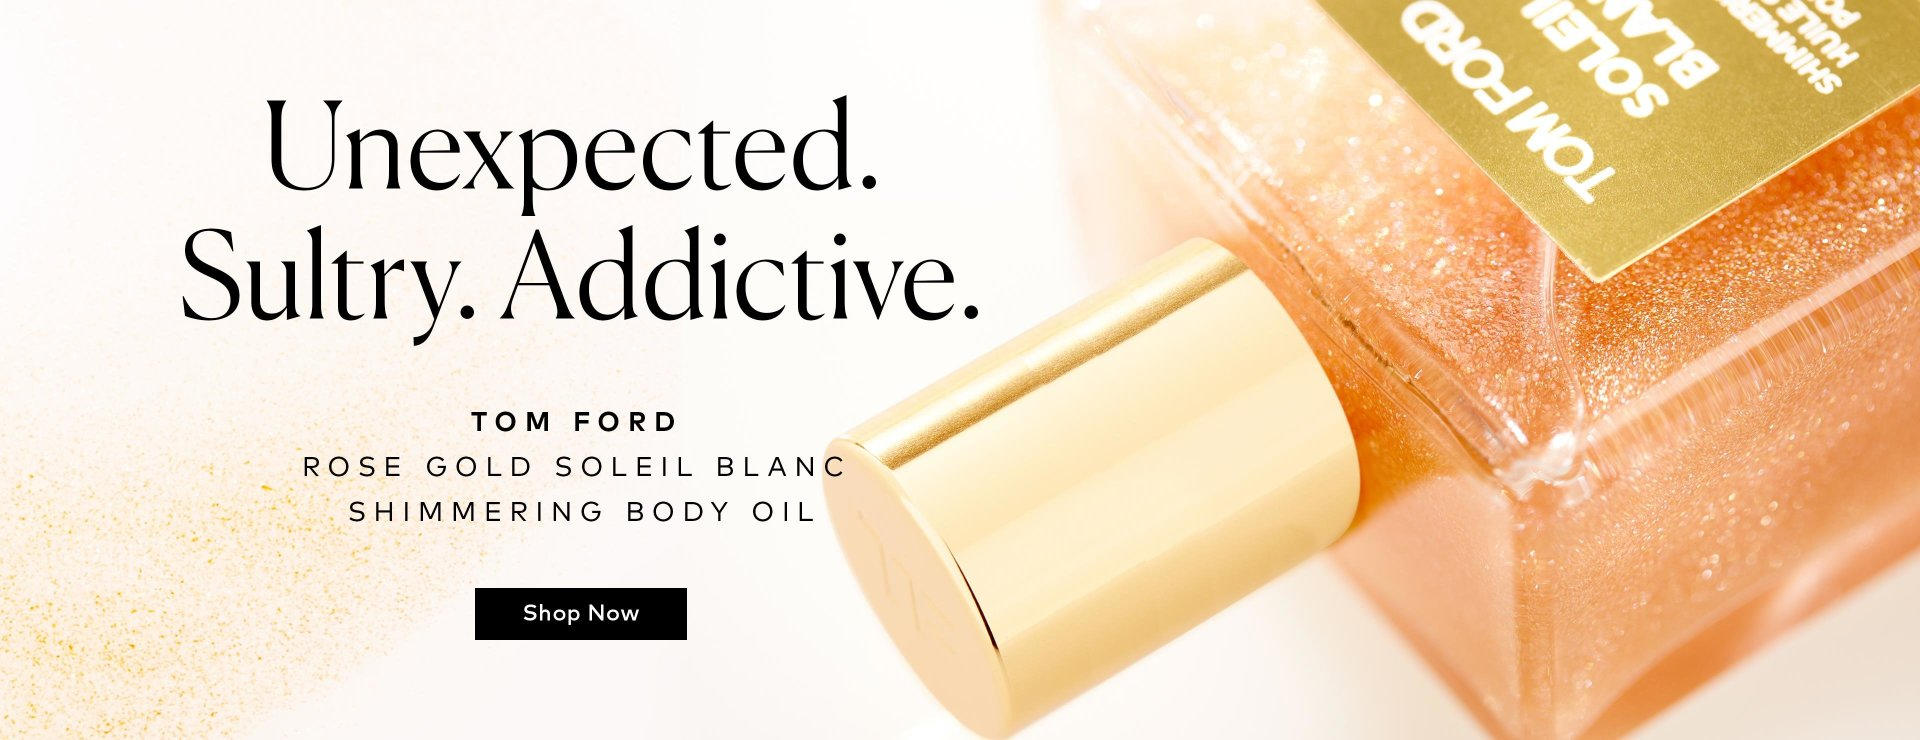 TOM FORD's Soleil Blanc Shimmering Body Oil now comes in rose gold – shop now!